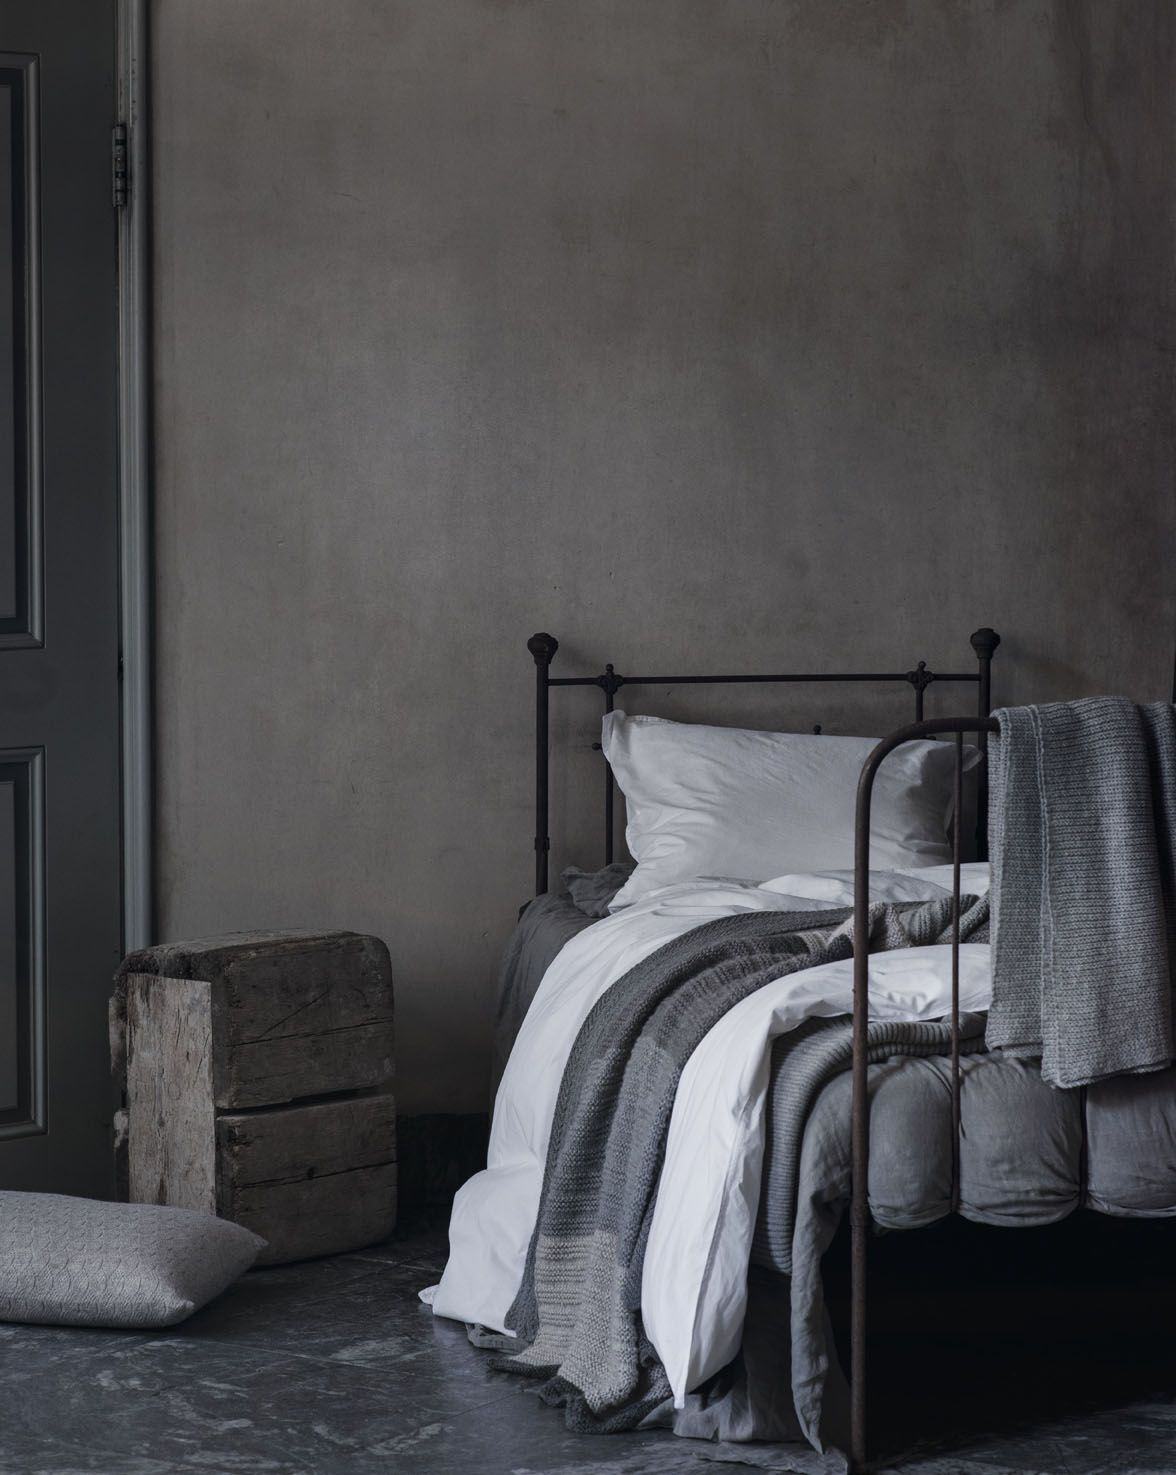 Aiayu Sengetøj aiayu sengetøj | bedrooms | pinterest | chambre coucher, maison and